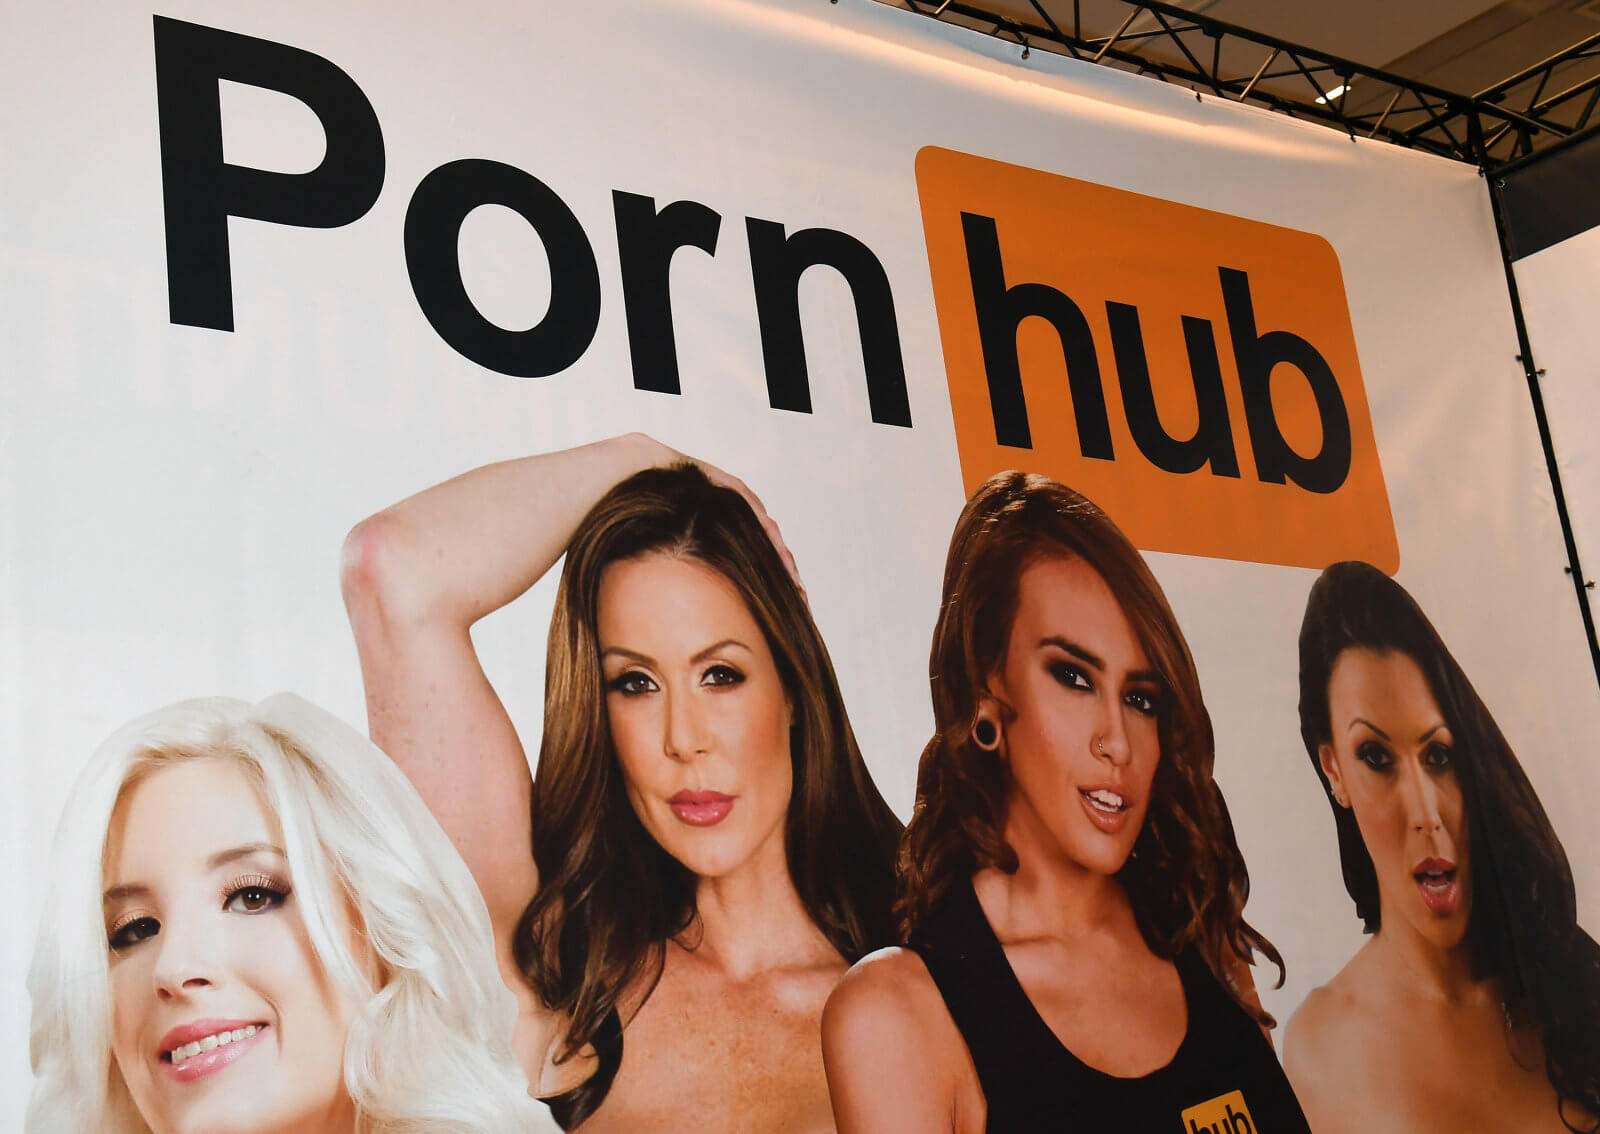 Video Games, Pornhub and Only Fans Content Creation: How the UK Coped During the Lockdown